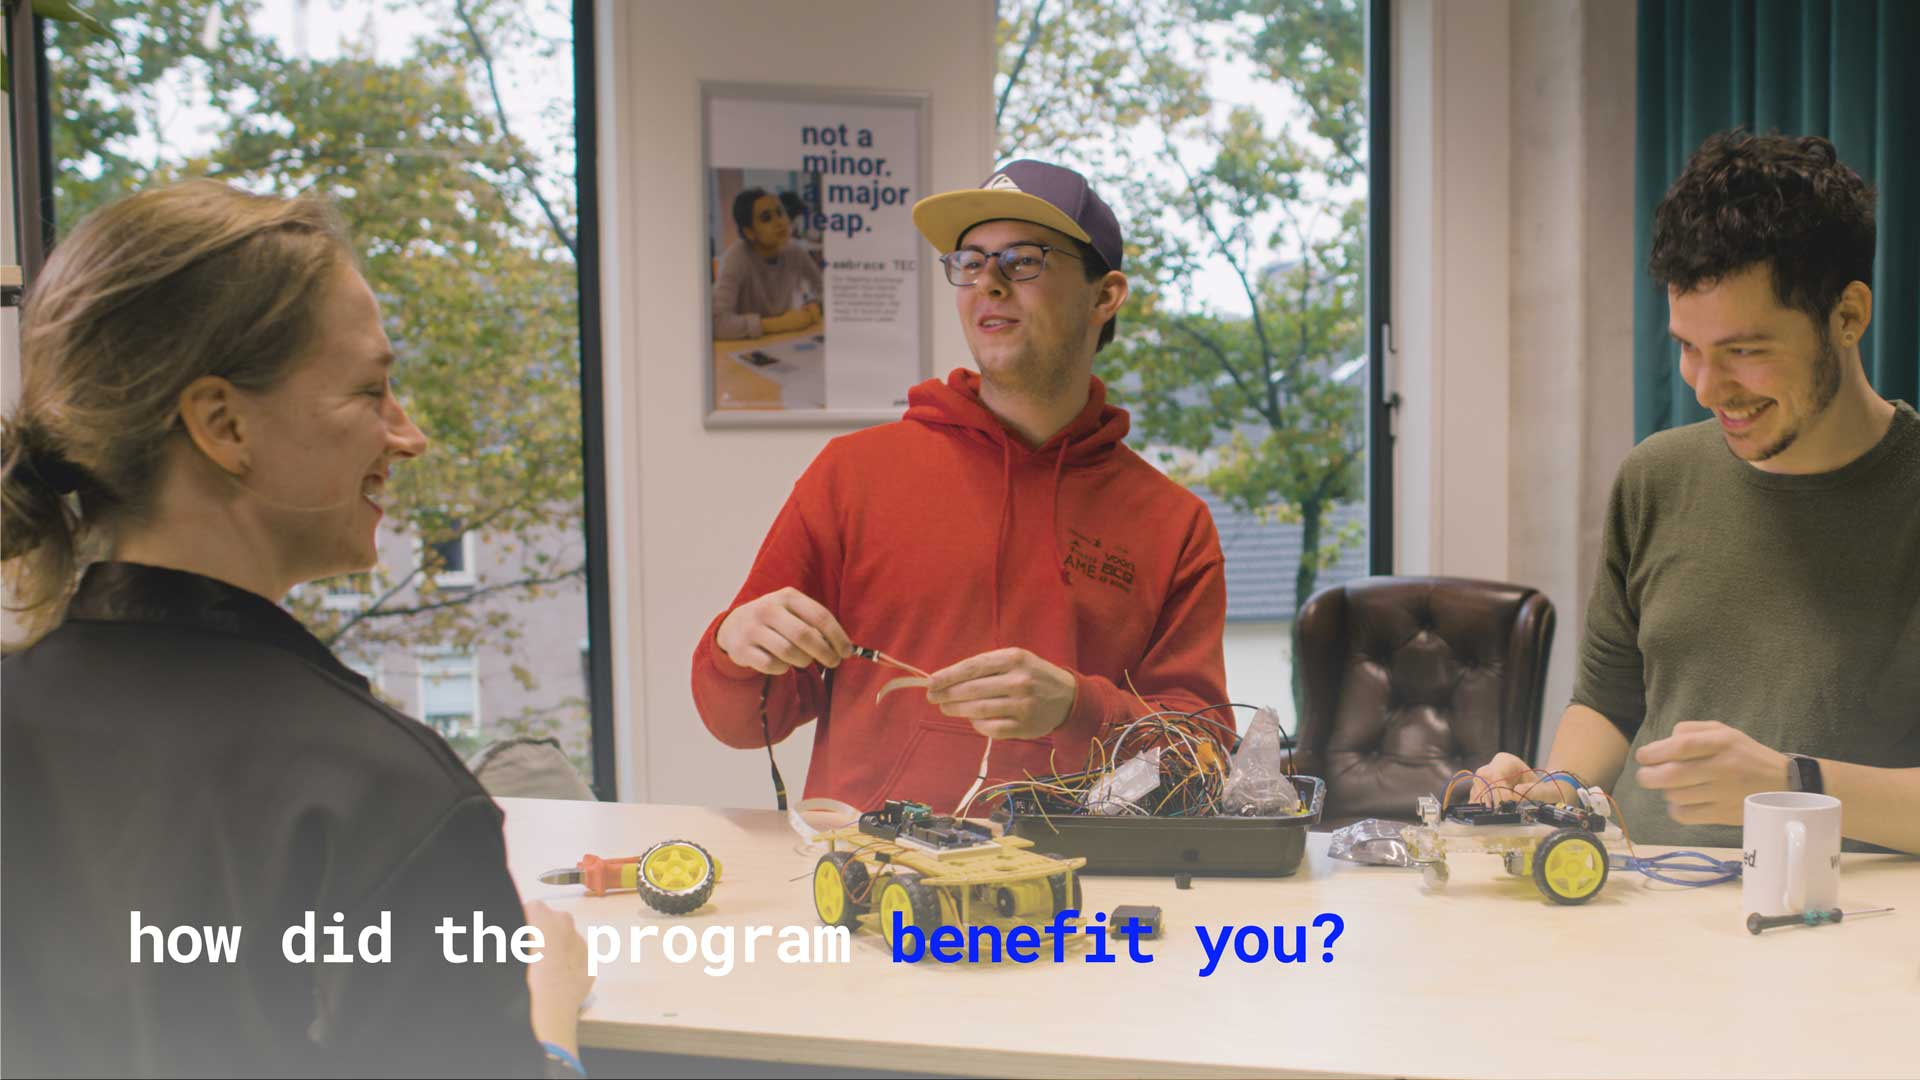 Vimeo video that answers the question of 'how did the program benefit you?'